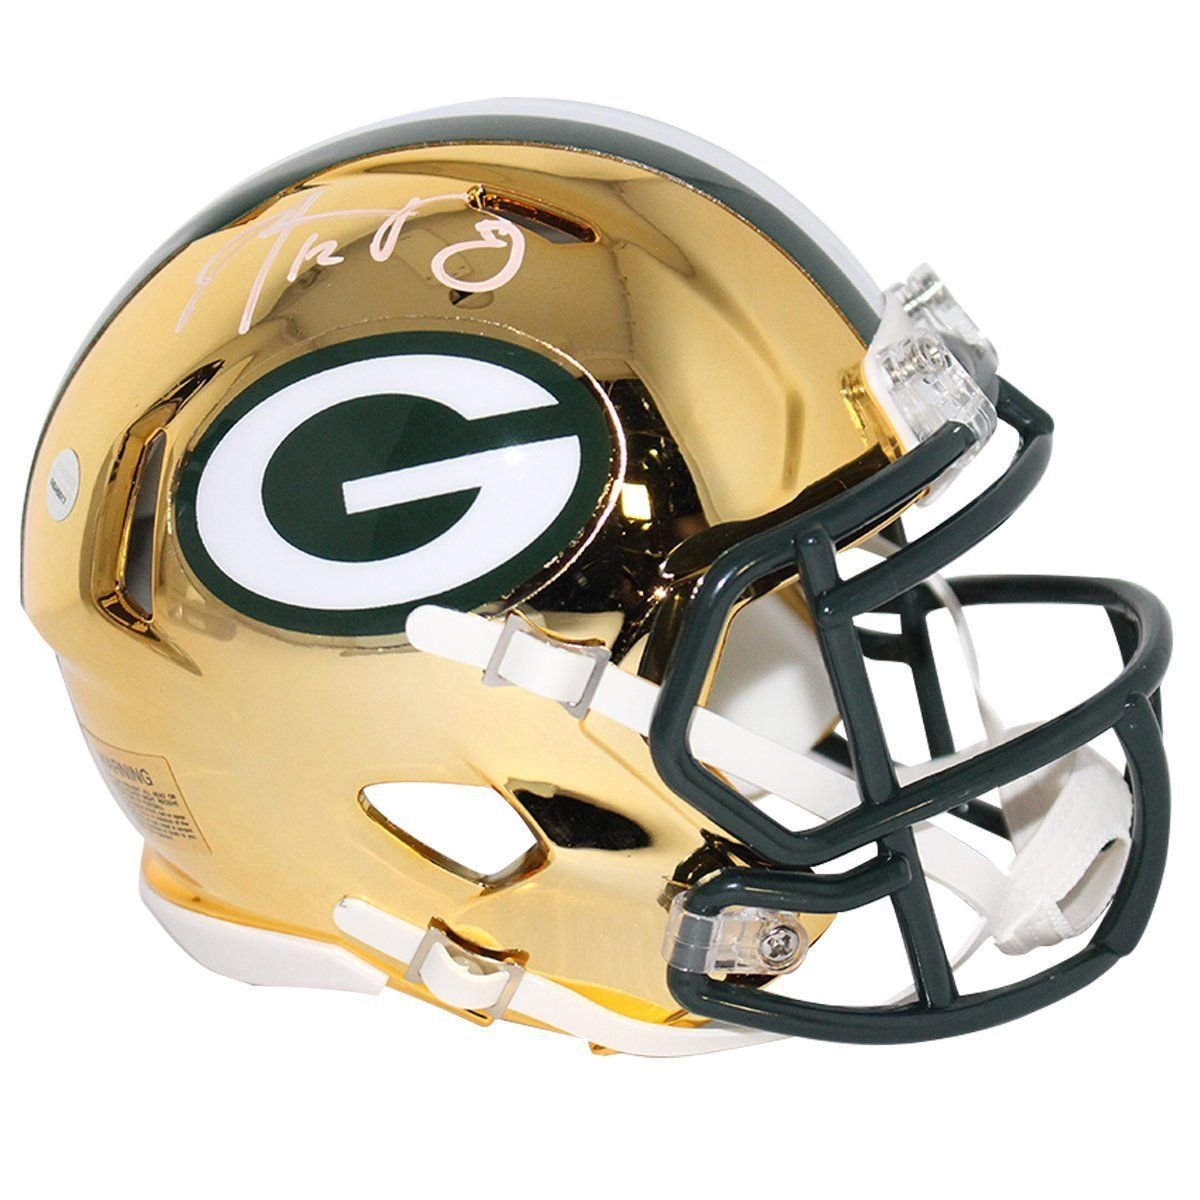 Aaron Rodgers Green Bay Packers Autographed Nfl Football Chrome Mini Helmet Aaron Rodgers Green Bay Packers Nfl Football Helmets